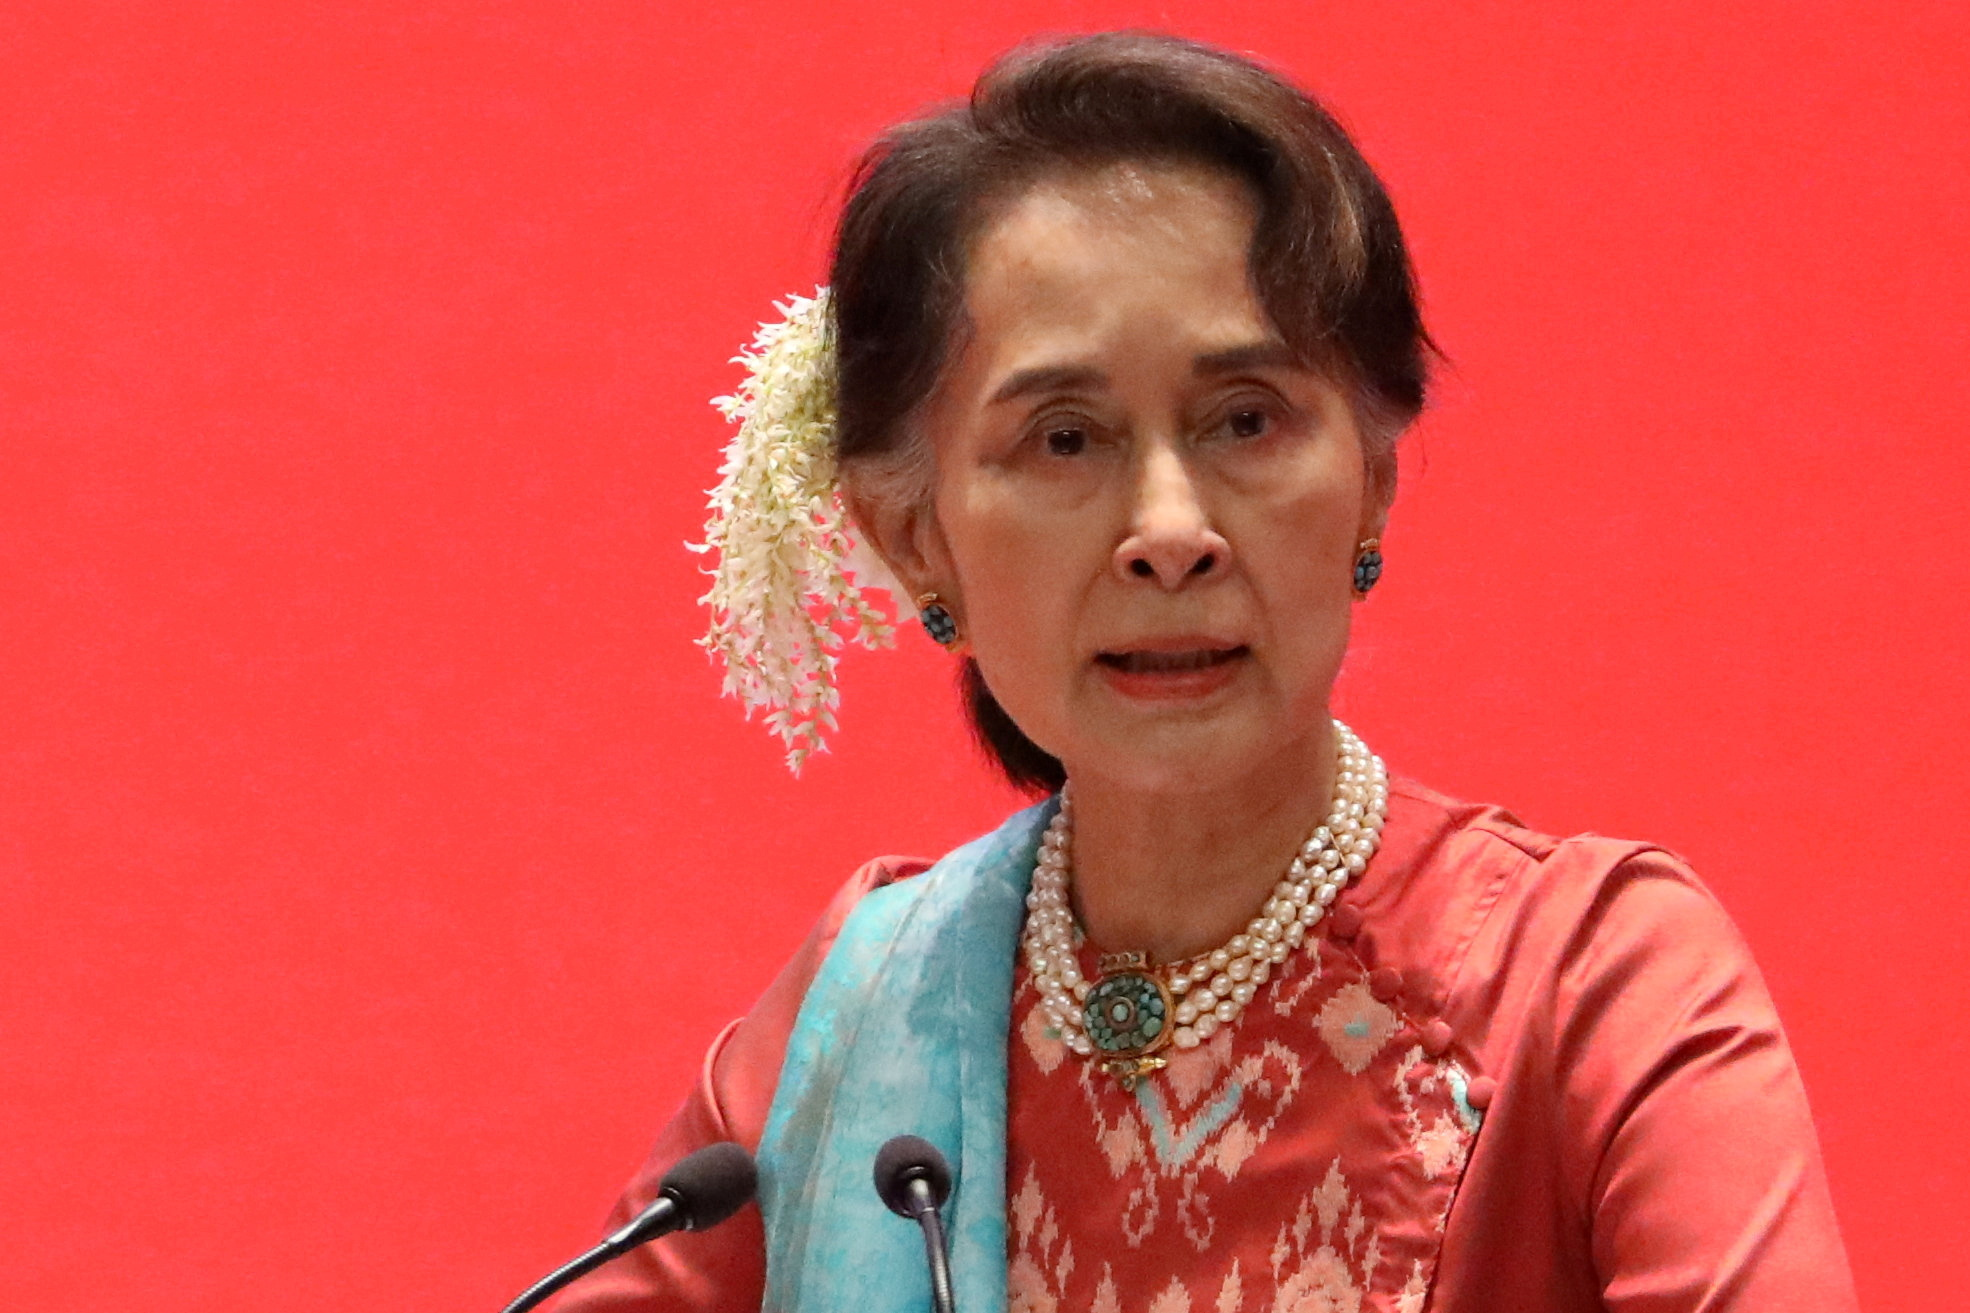 Myanmar's State Counsellor Aung San Suu Kyi attends Invest Myanmar in Naypyitaw, Myanmar, January 28, 2019. REUTERS/Ann Wang/File Photo